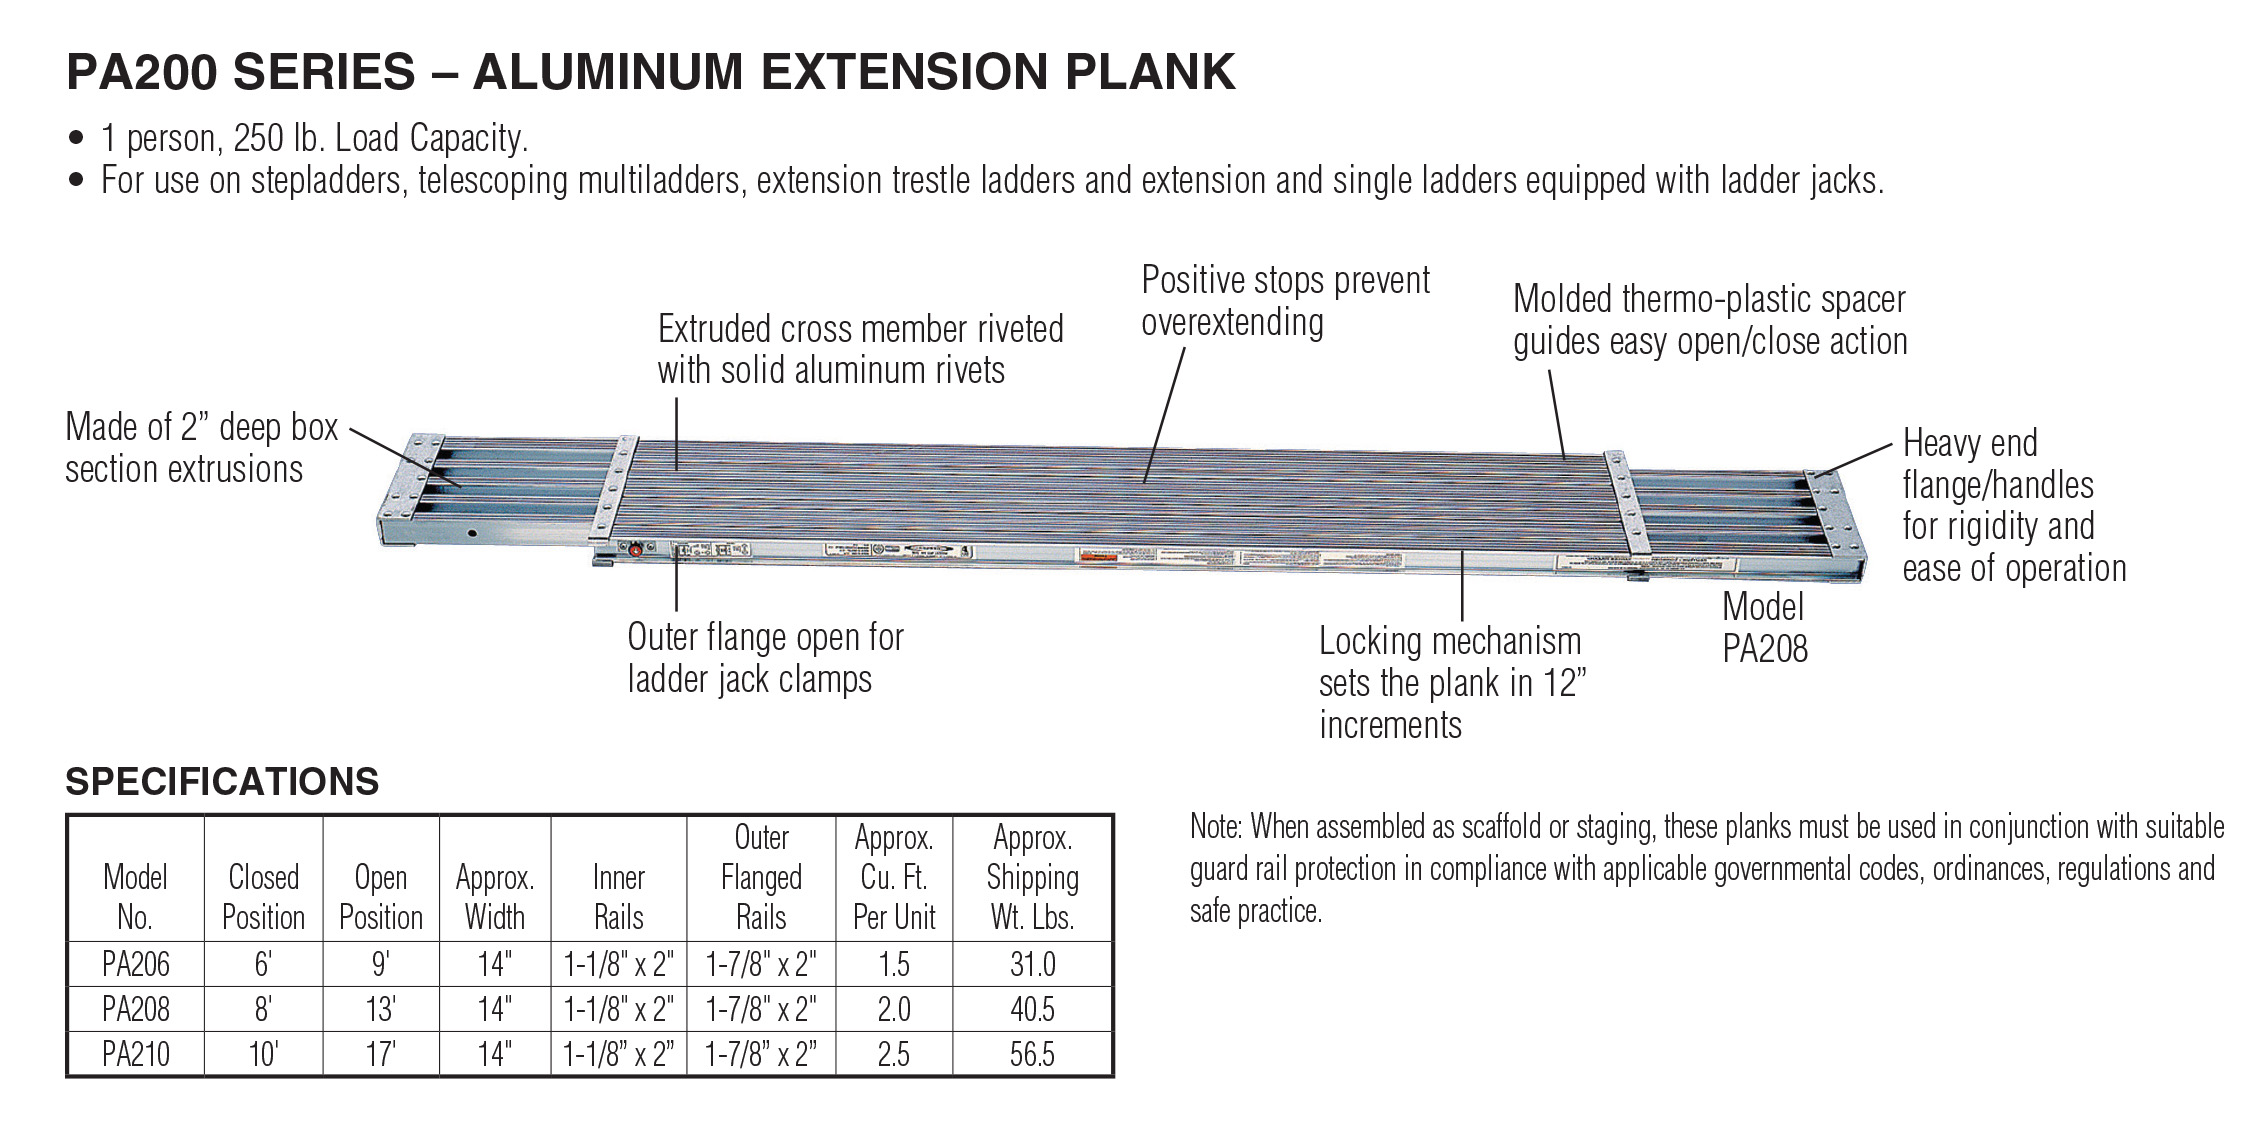 pa-series-ext.-planks-a.jpg